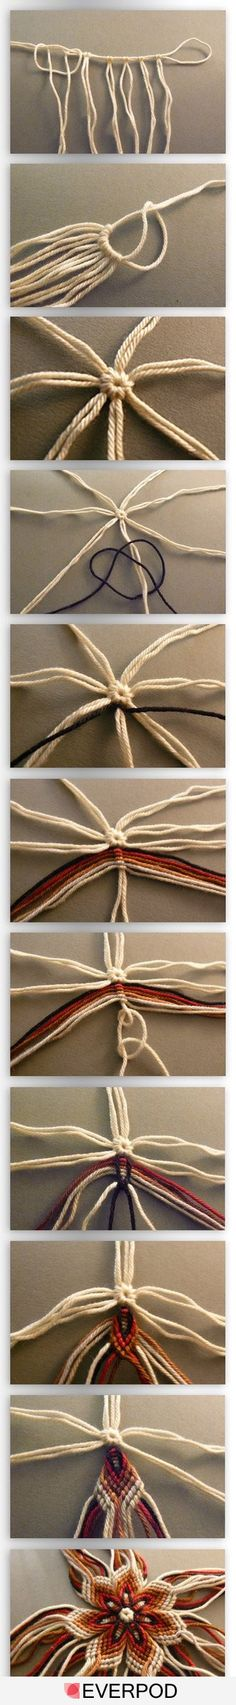 I want to try this, although this may be above my level of macramé talent.